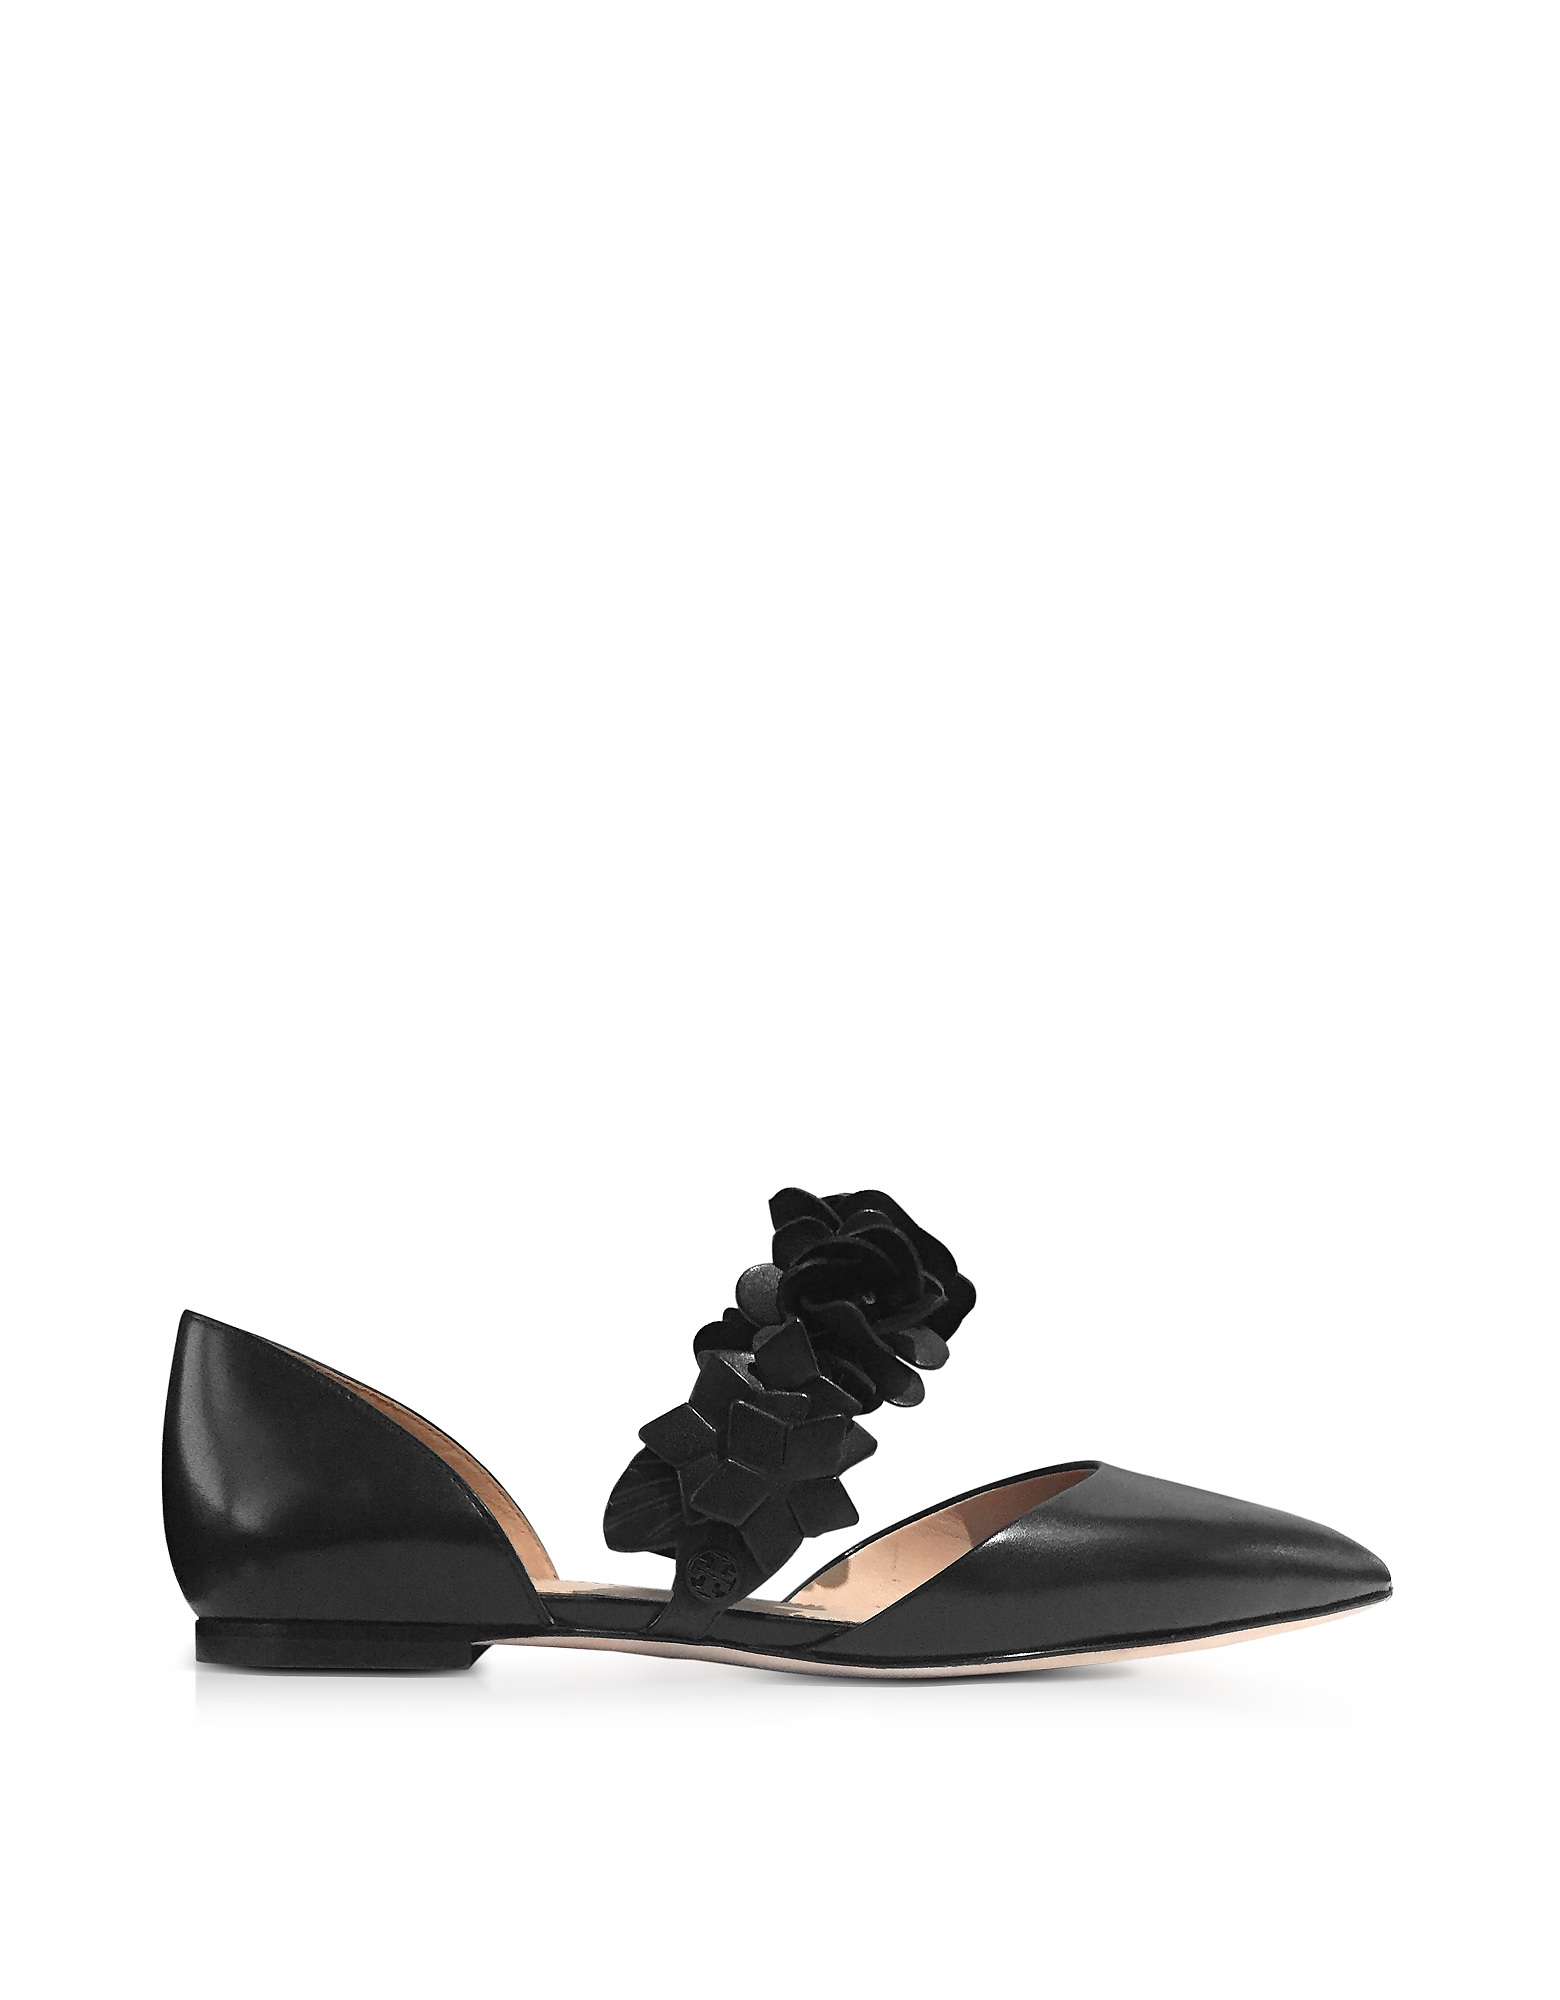 Tory Burch Shoes, Black Leather Blossom d'Orsay Flats